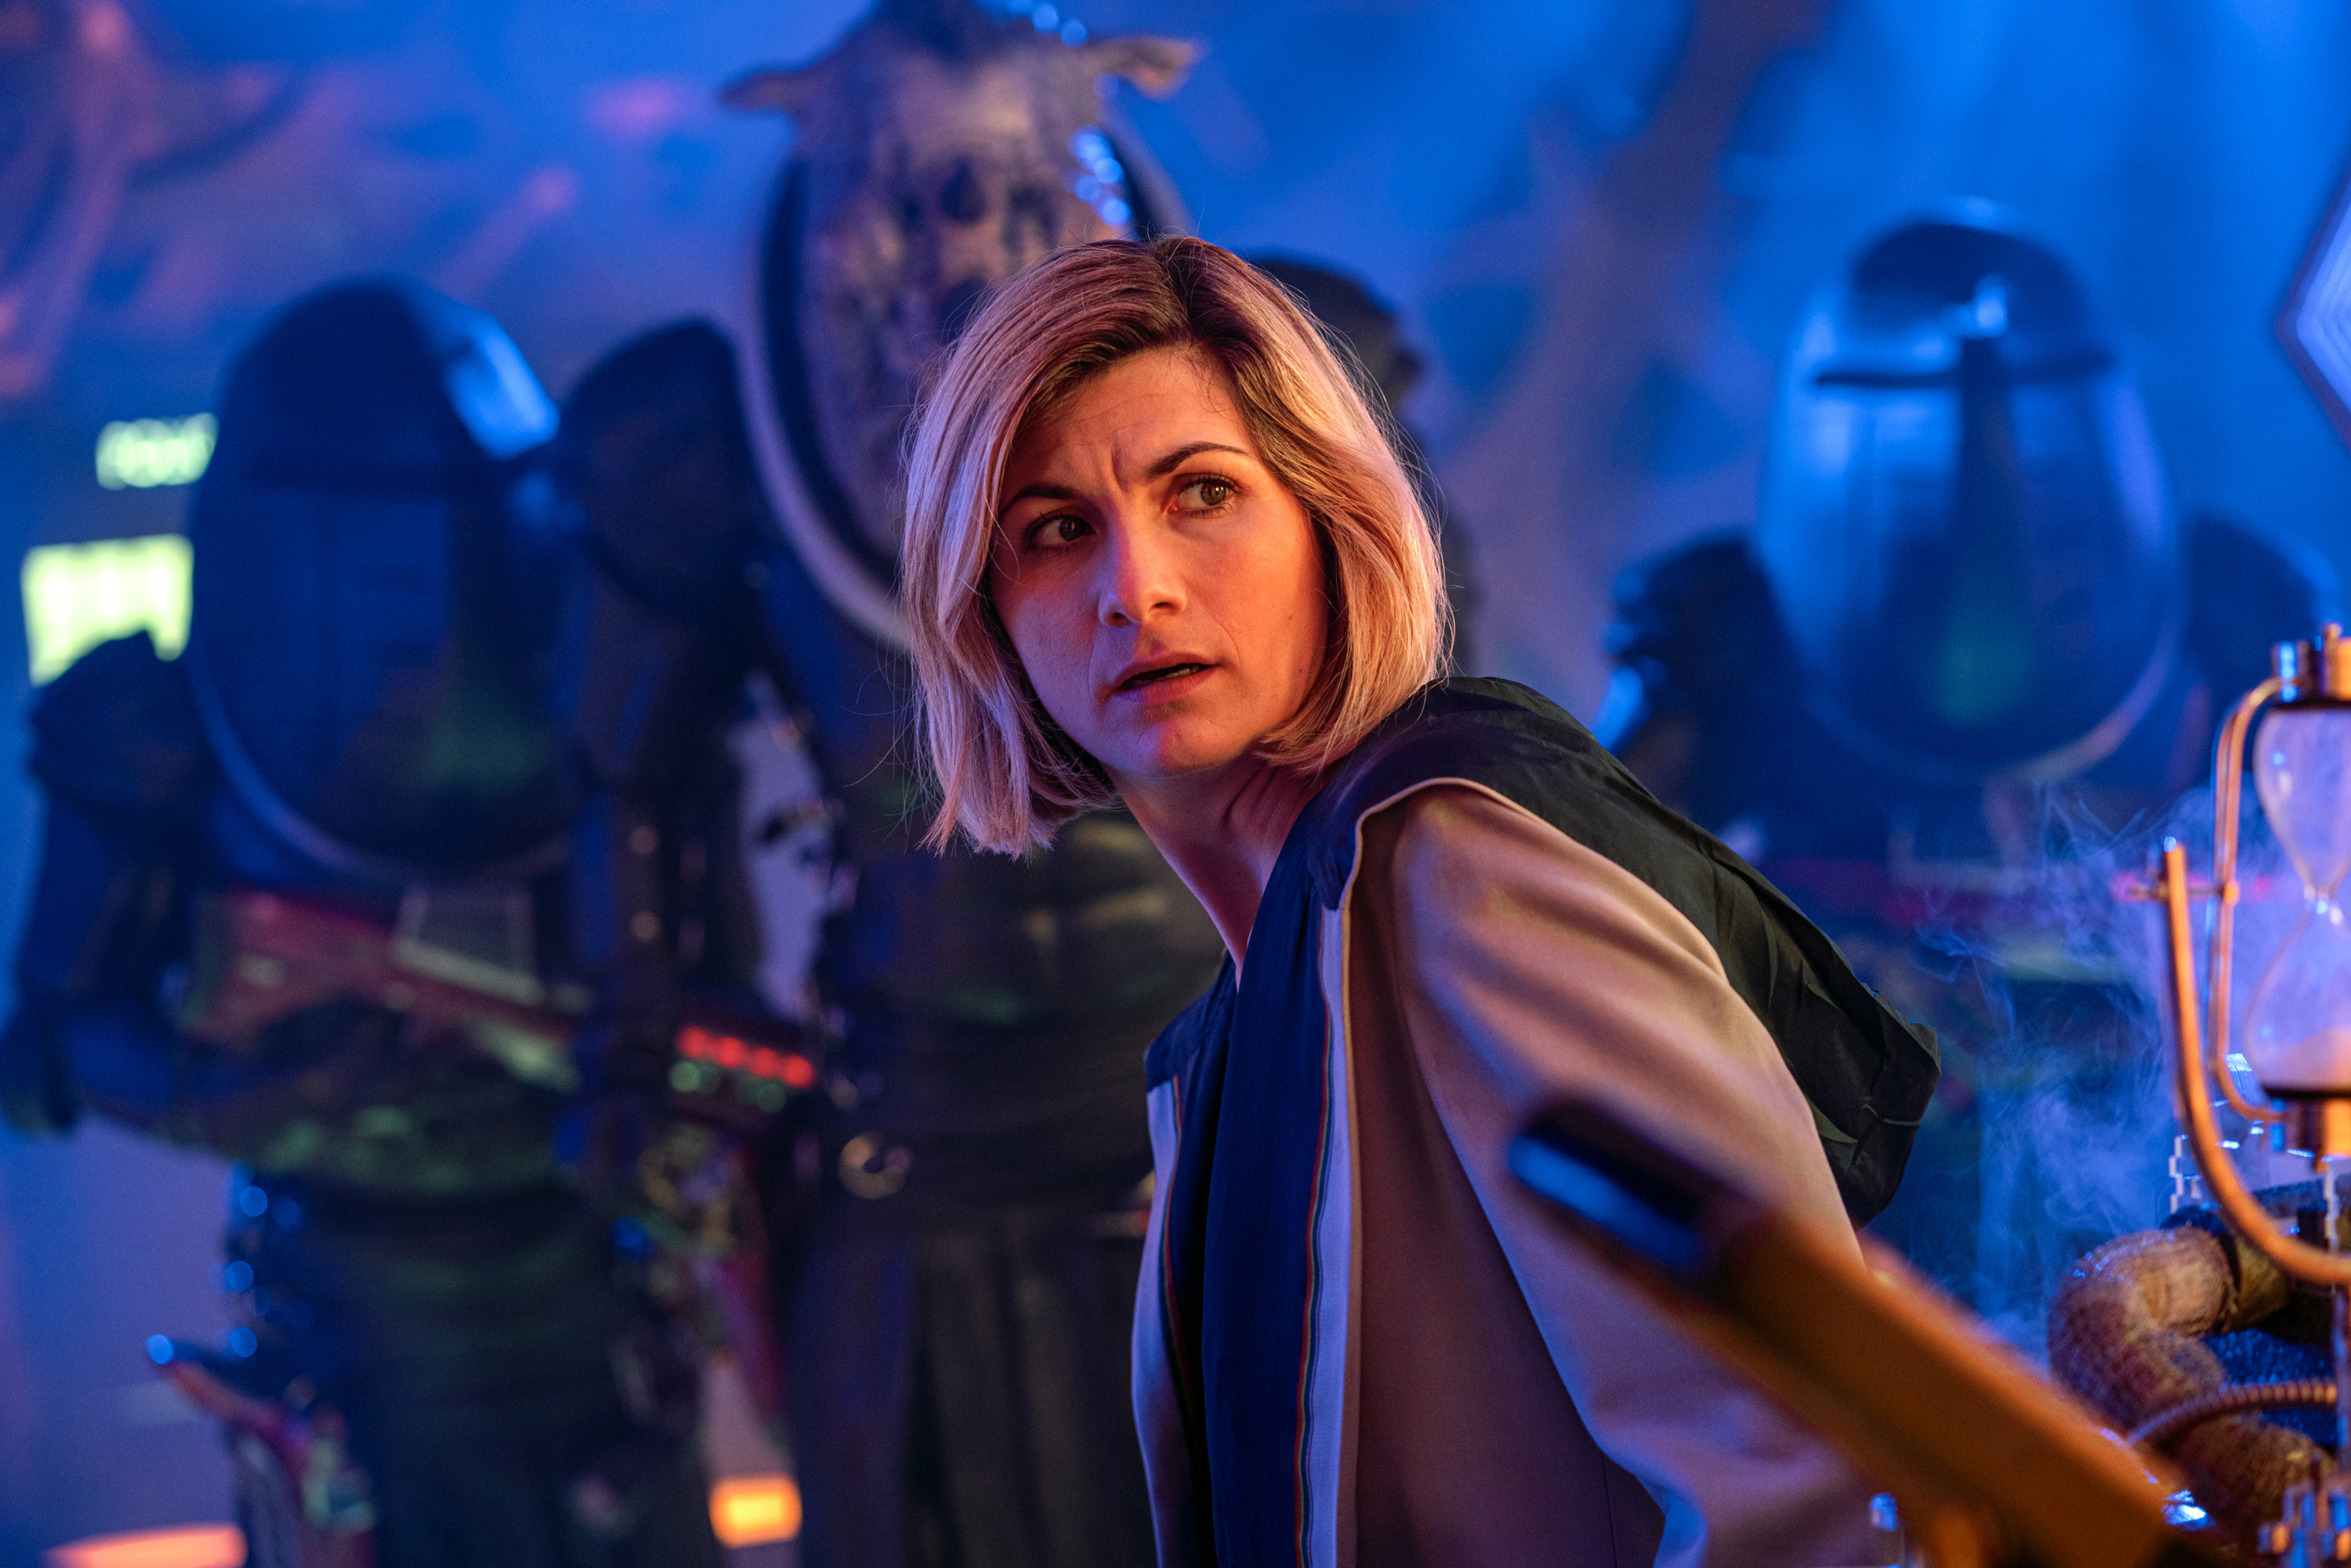 The Thirteenth doctor.